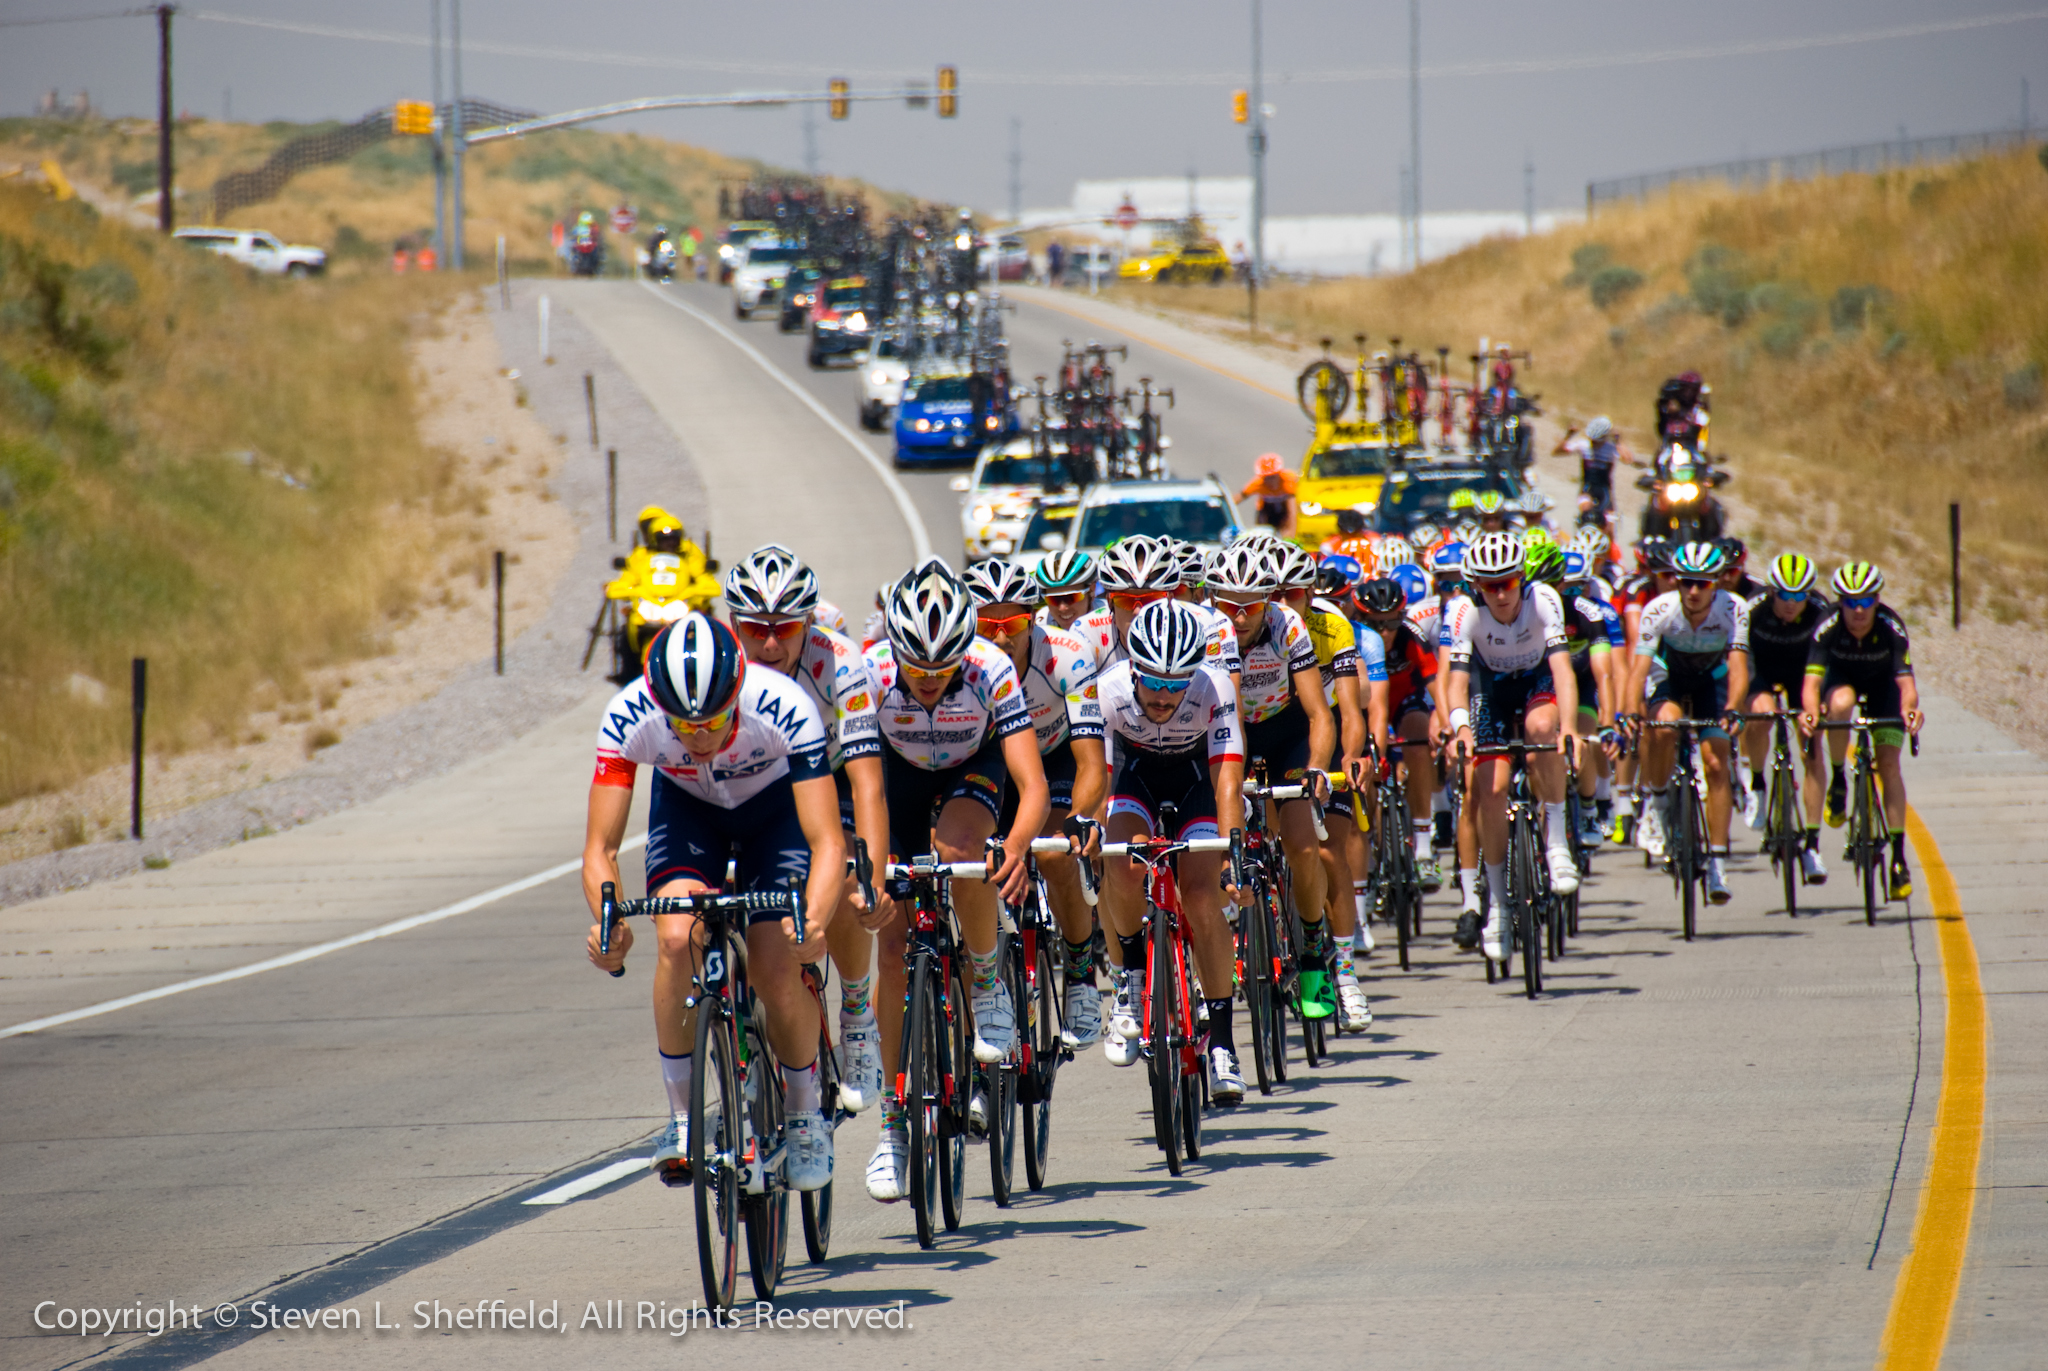 Travis McCabe takes the win. Stage 4 of the 2016 Tour of Utah. Photo: Catherine Fegan-Kim, cottonsoxphotography.com